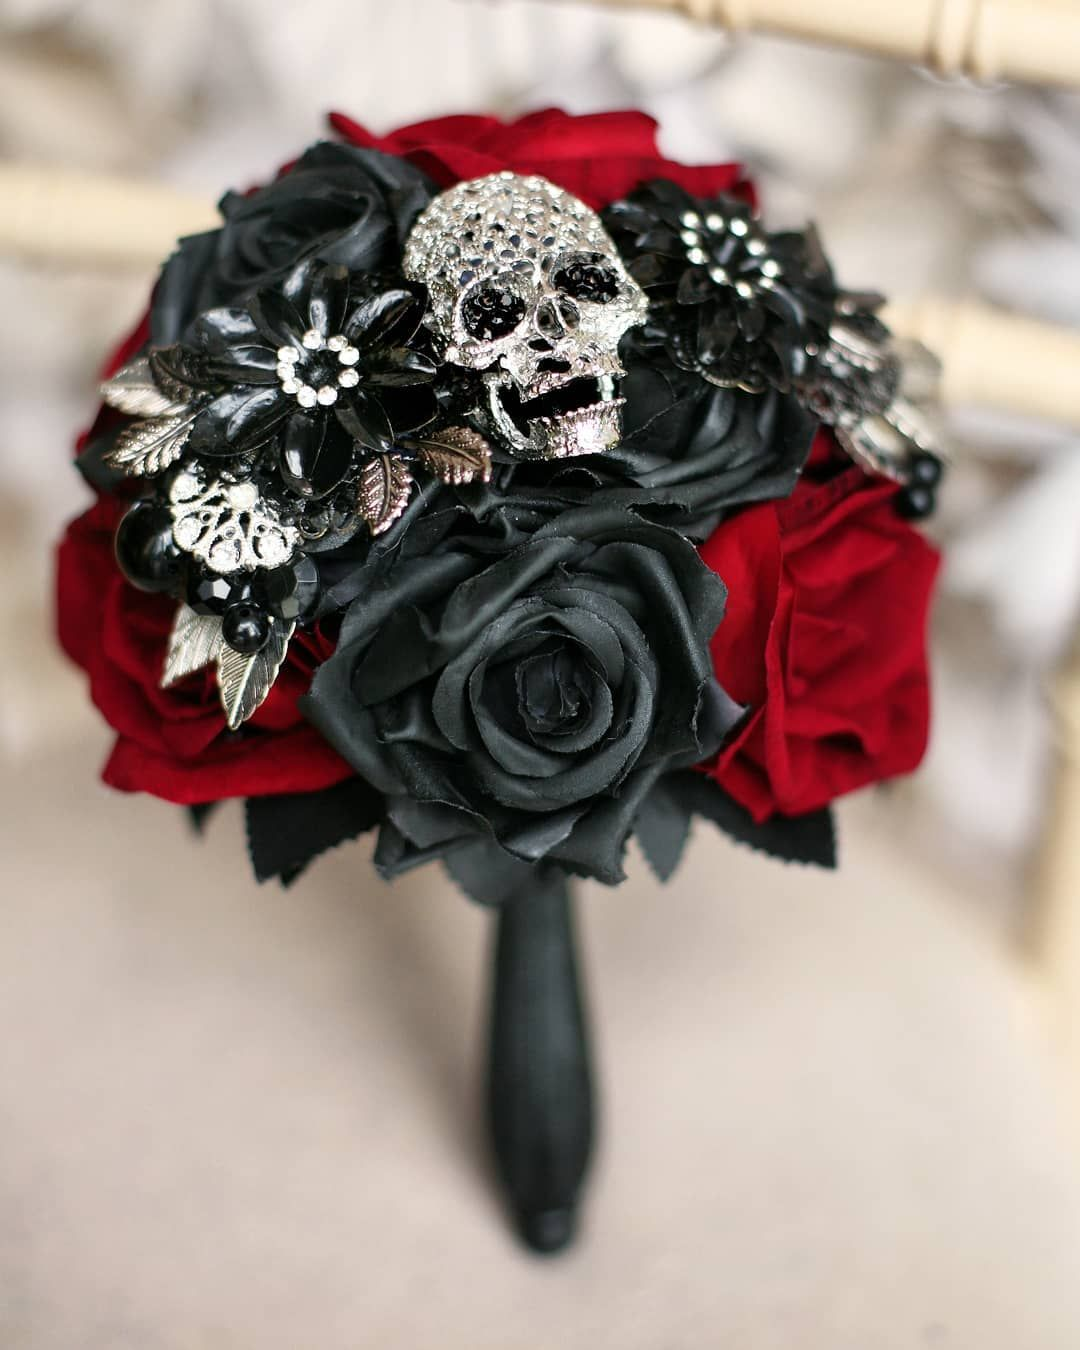 Gothic skull bridesmaid bouquet priced £70 Available to